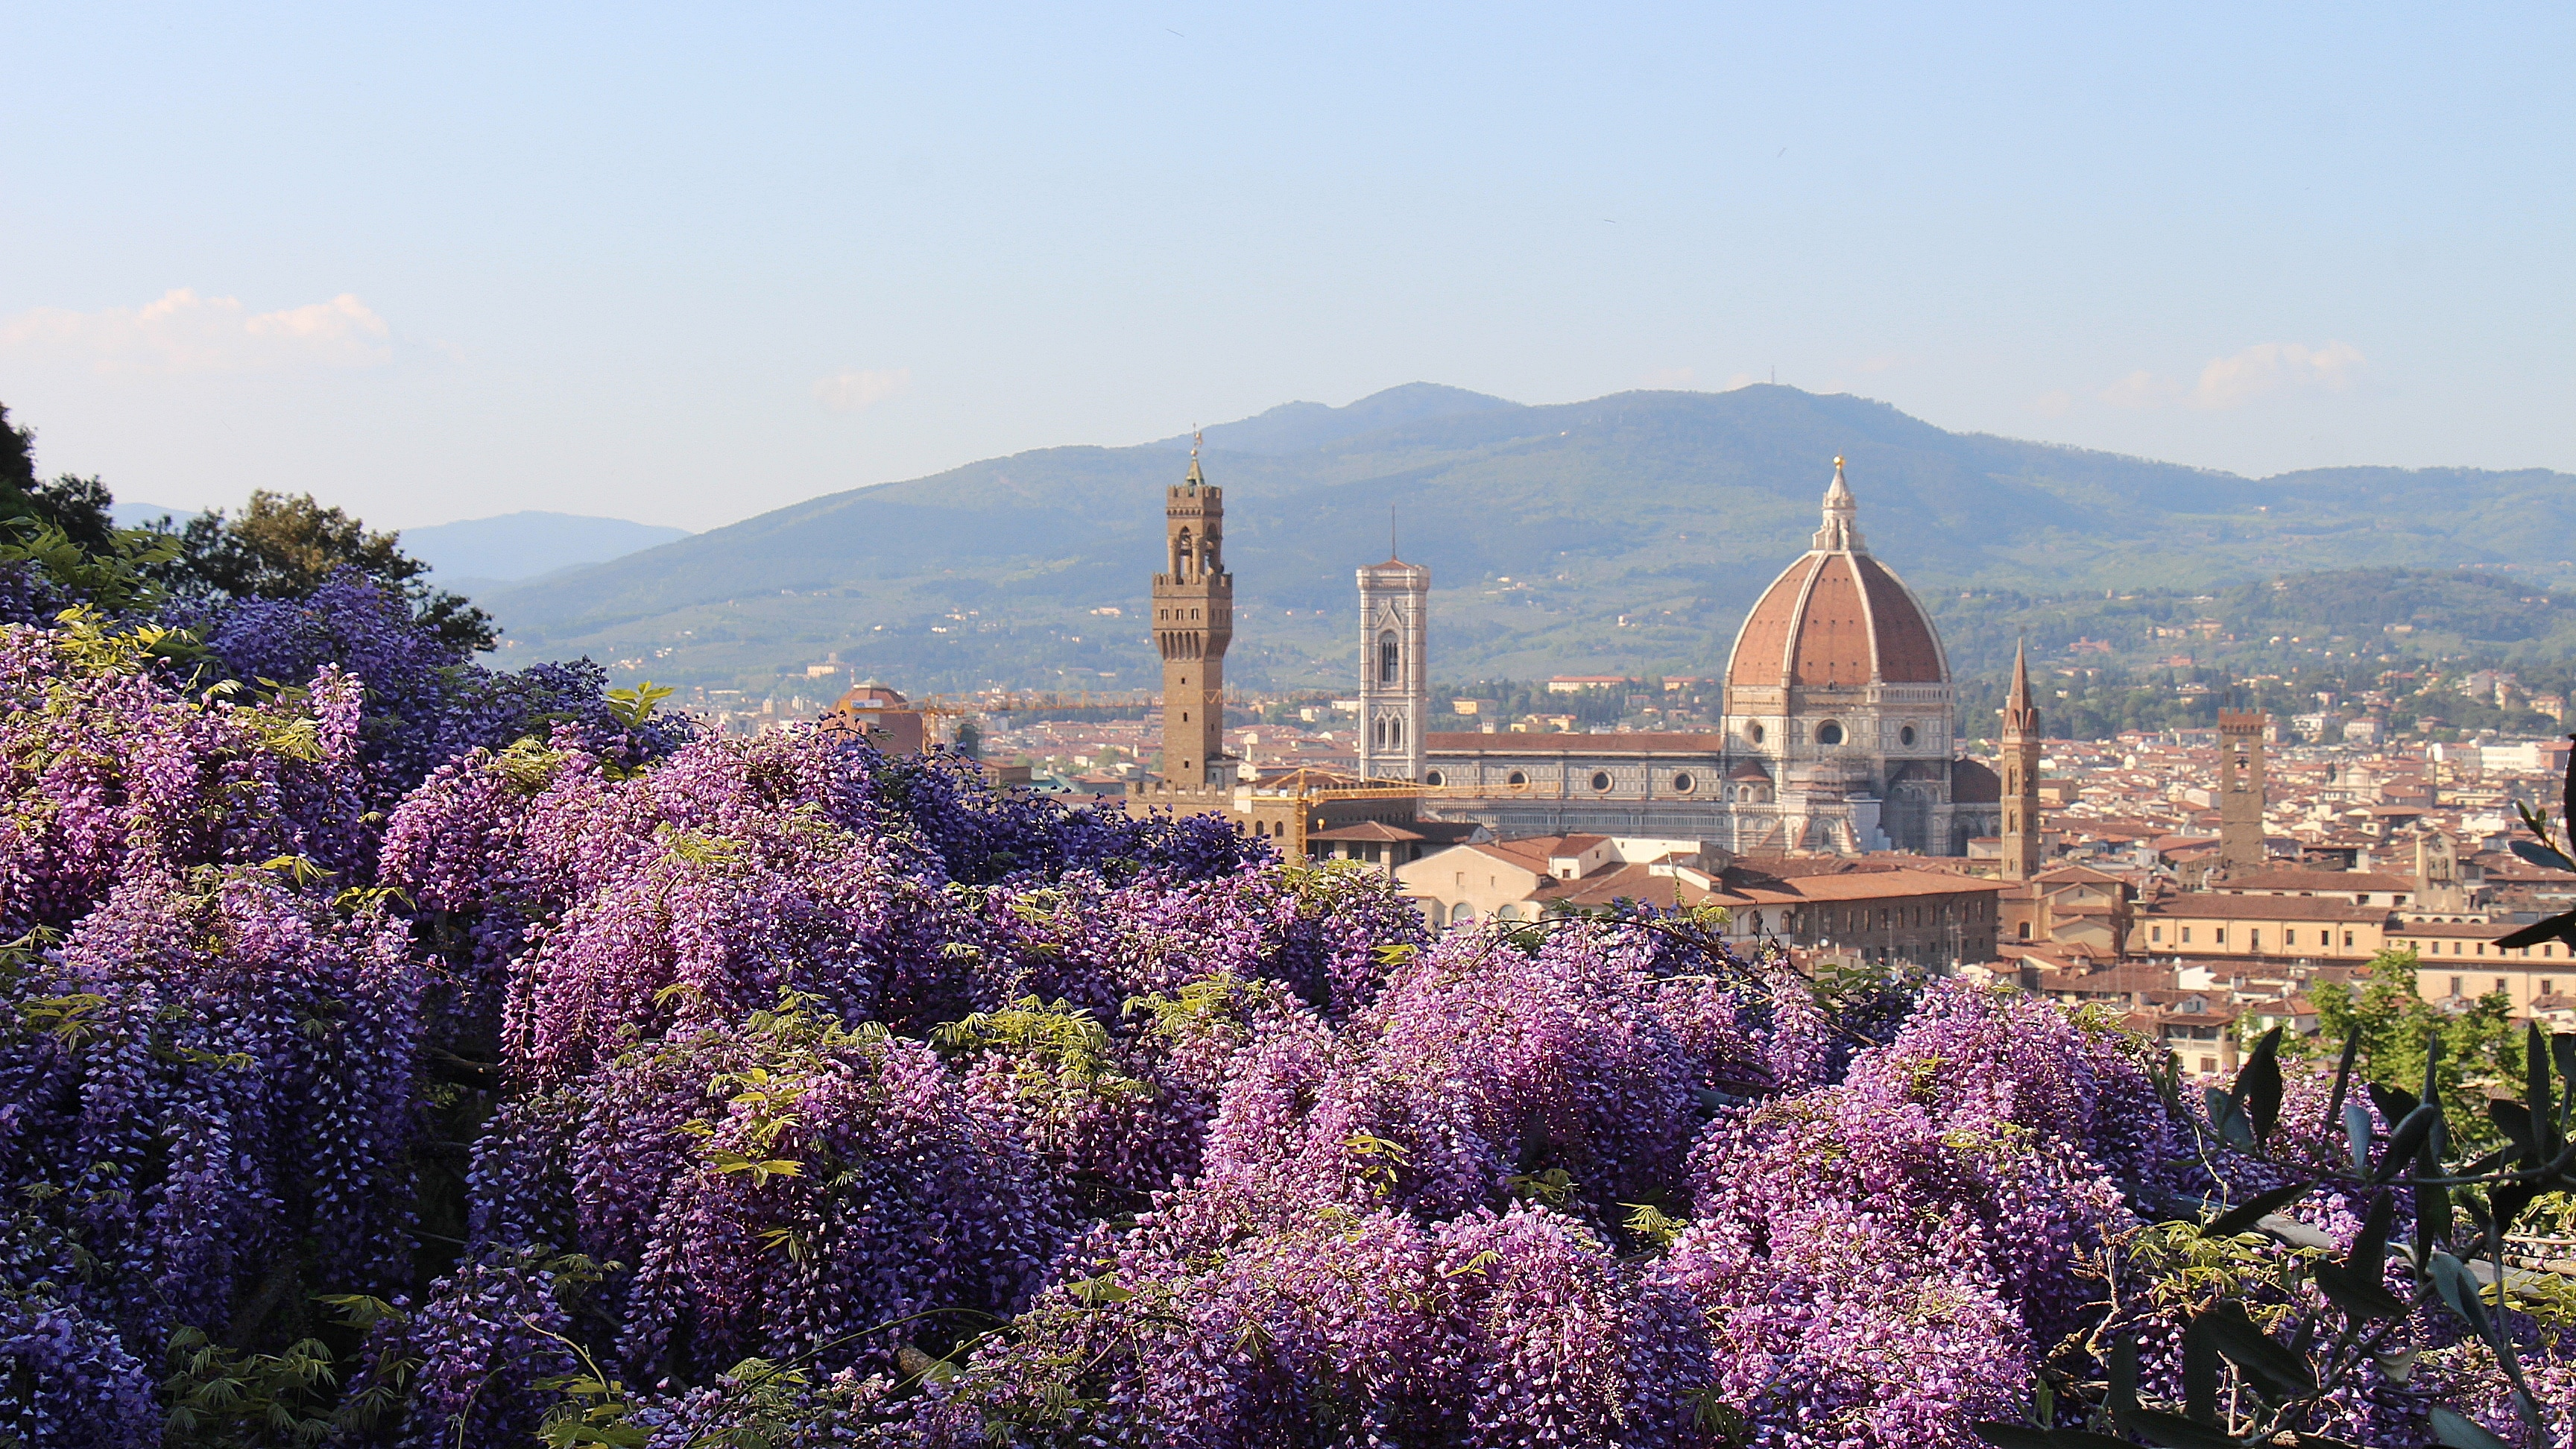 The most beautiful public gardens in Tuscany near Florence